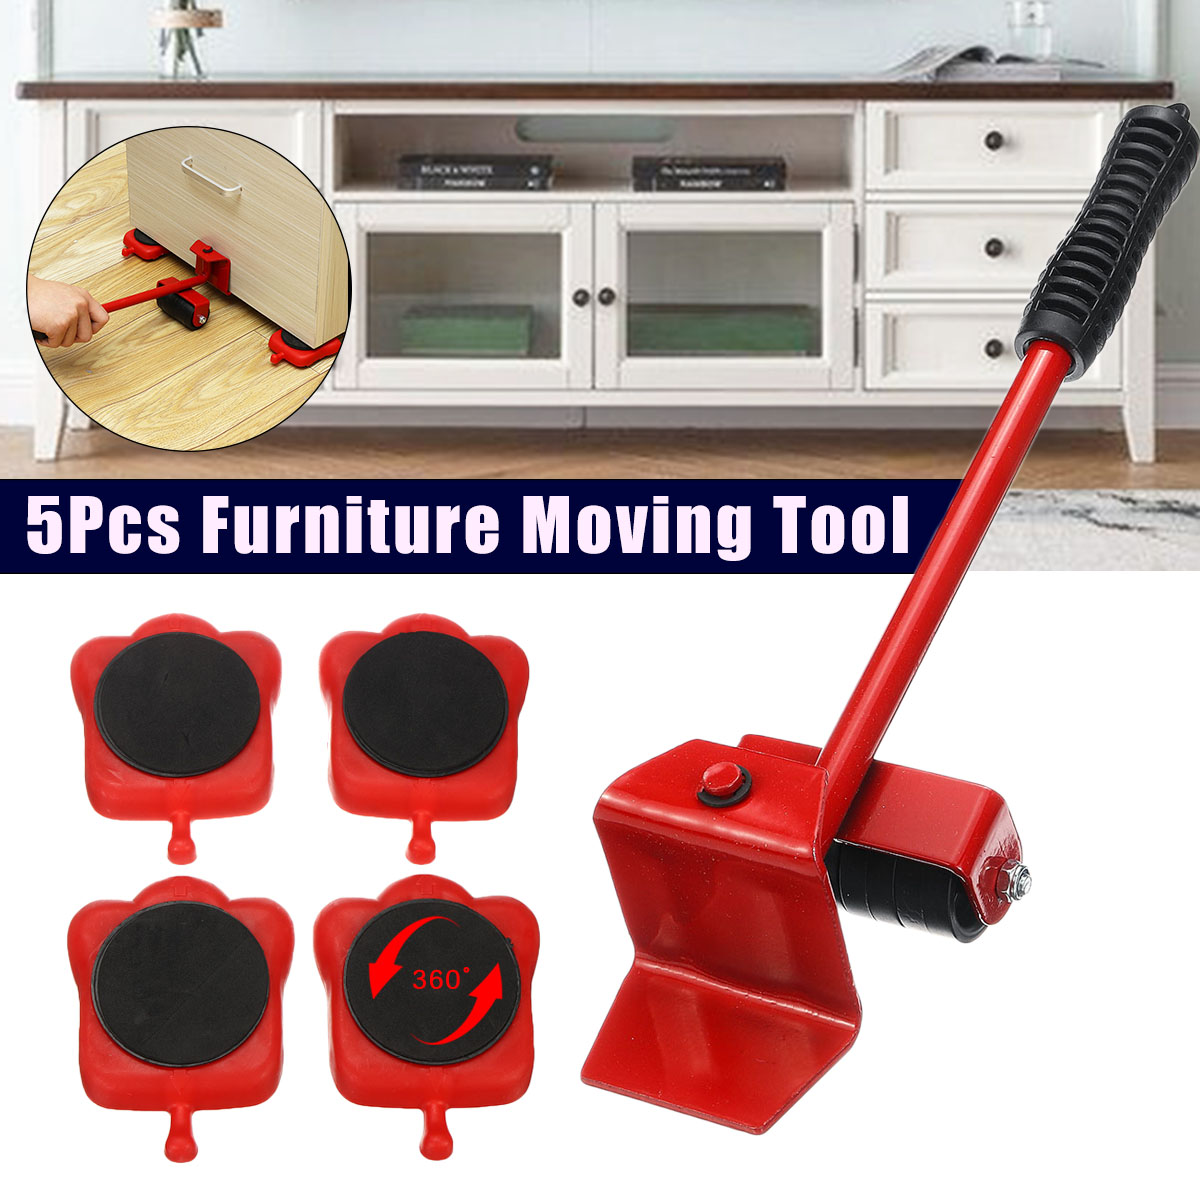 Cat Paw Heavy Duty Furniture Lifter Mover Transport Set 4 Mover Roller+1 Wheel Bar For Lifting Moving Furniture Helper